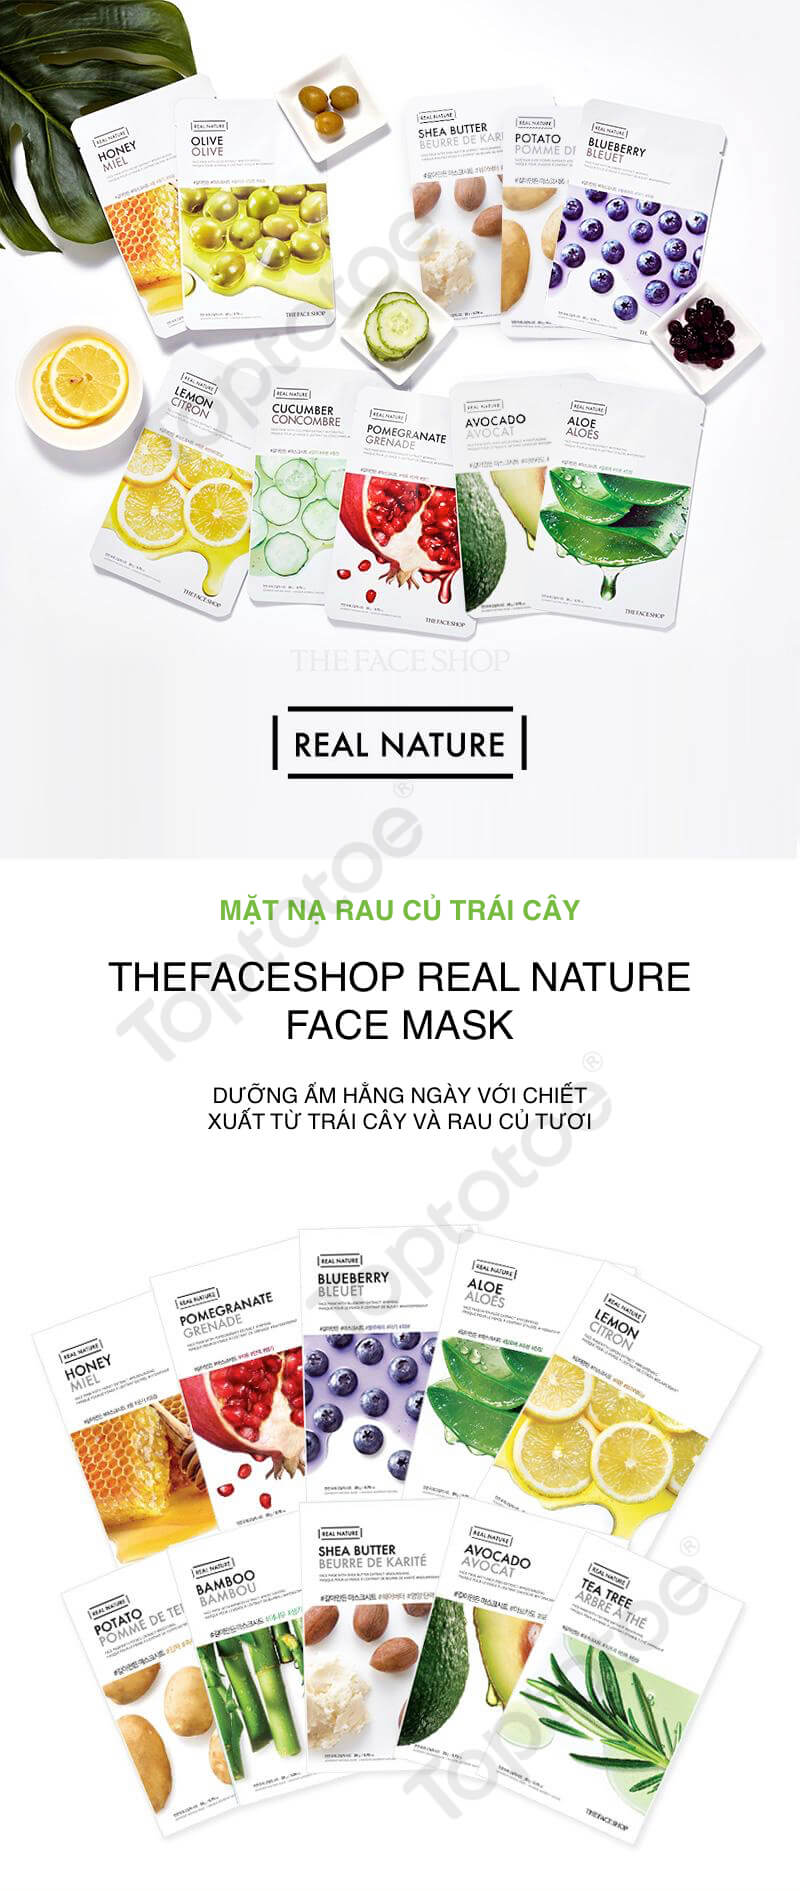 THEFACESHOP REAL NATURE